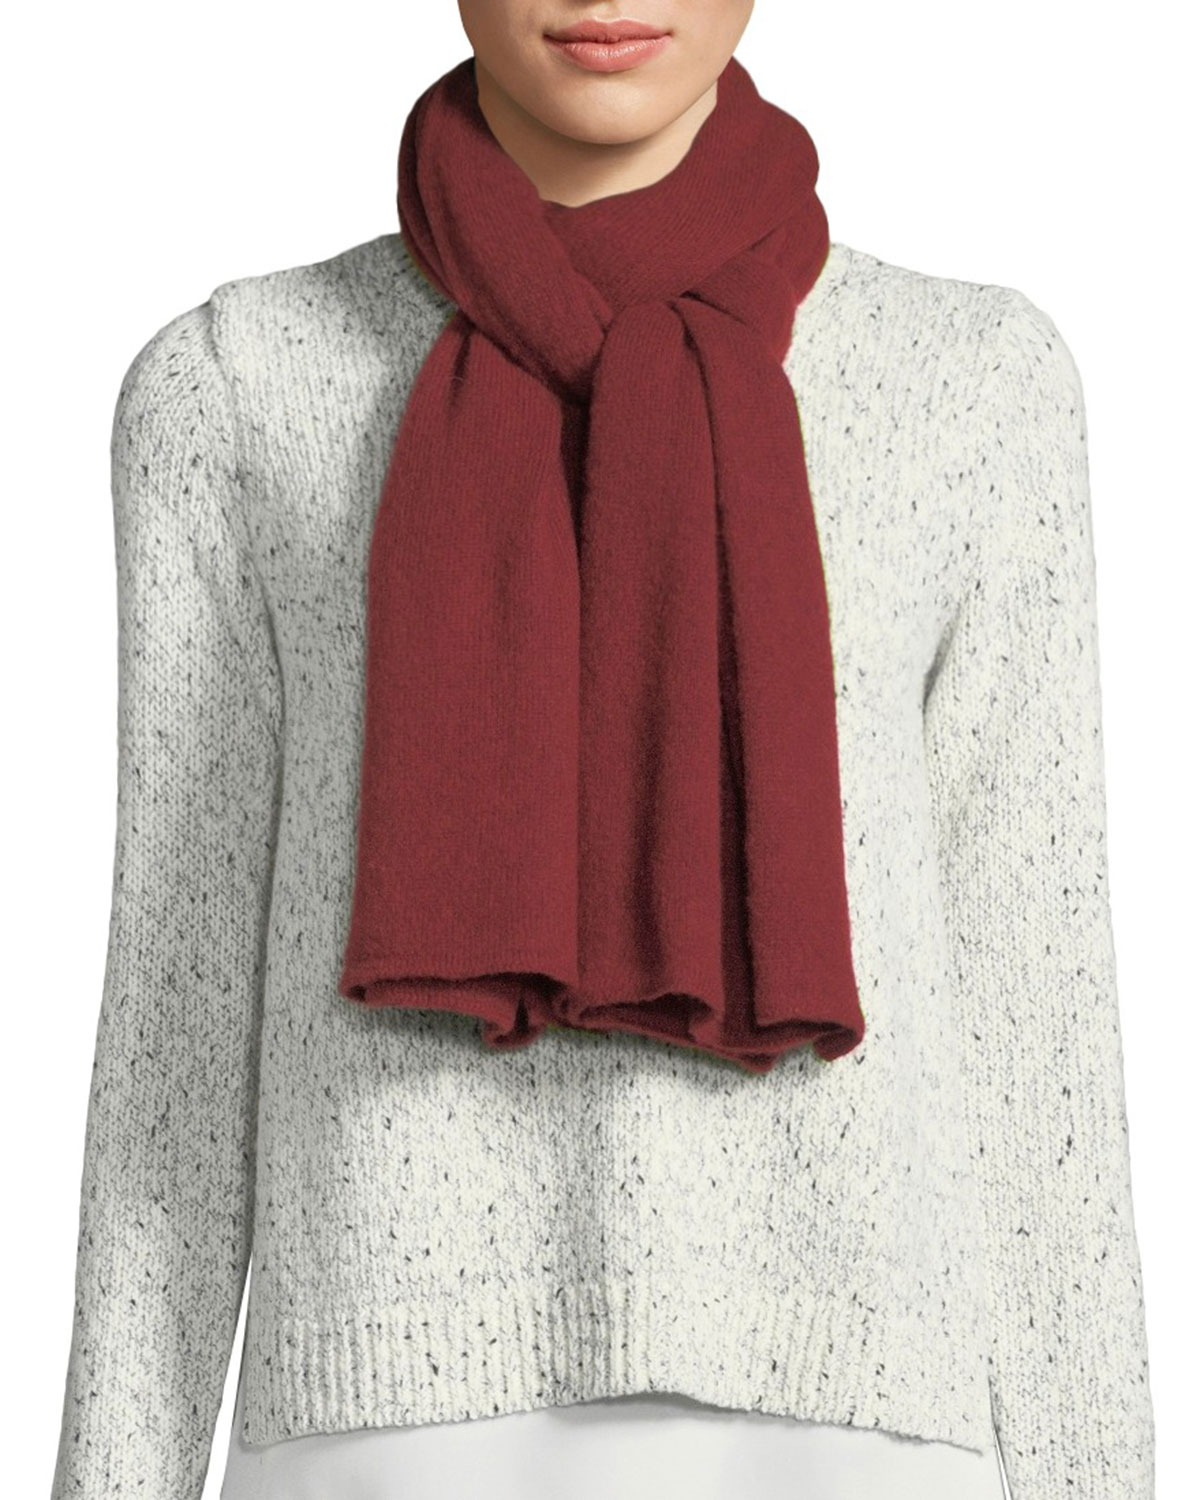 IL BORGO Heavyweight Cashmere-Blend Scarf in Red